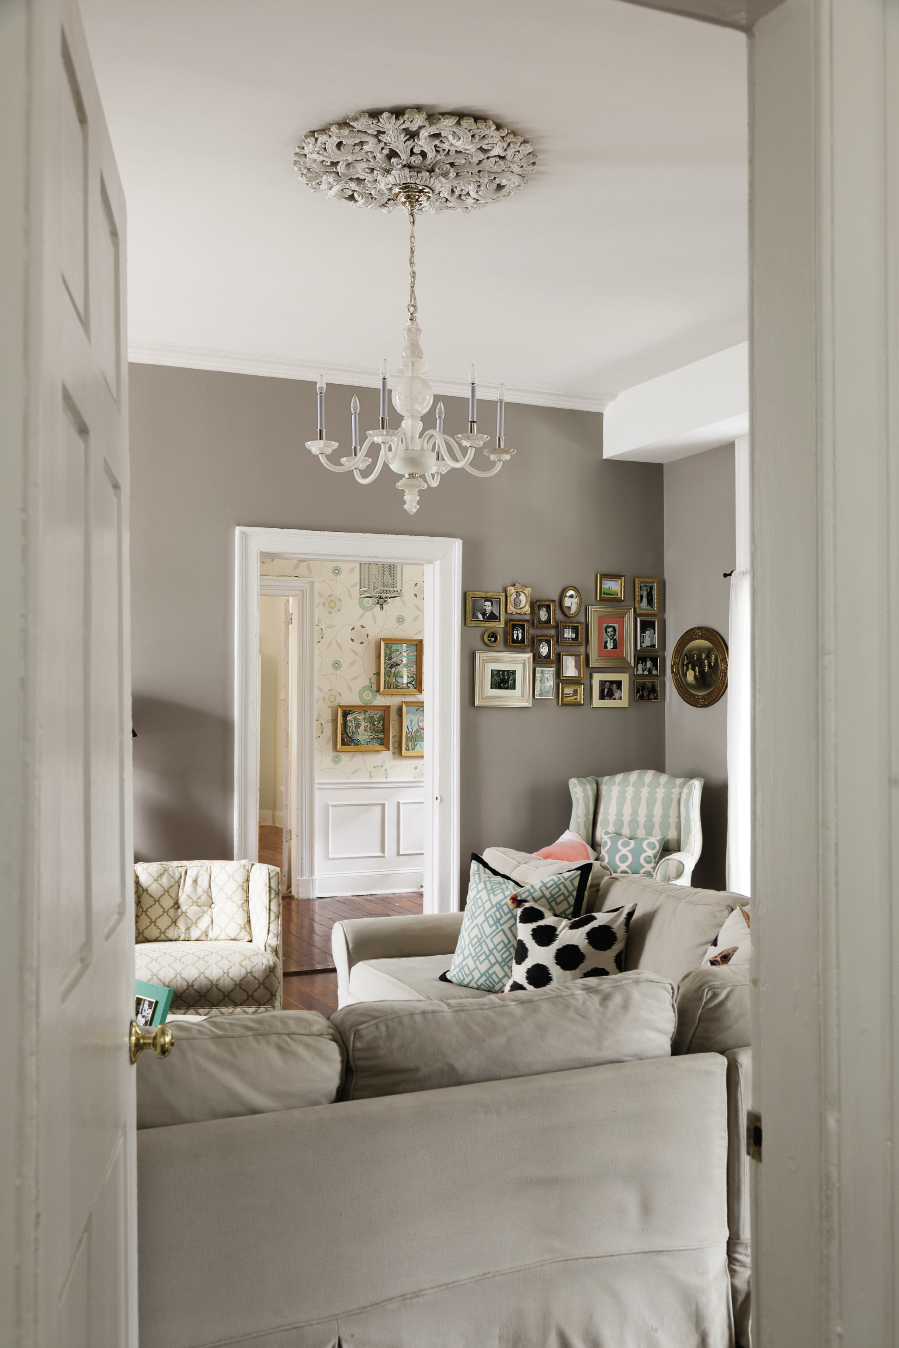 Mixed Mod A cozy mix of a neutral palette, playful patterns, and family-friendly furniture, the Lails' living room is ideal for all generations, including the ancestors featured in the artful framed collage.